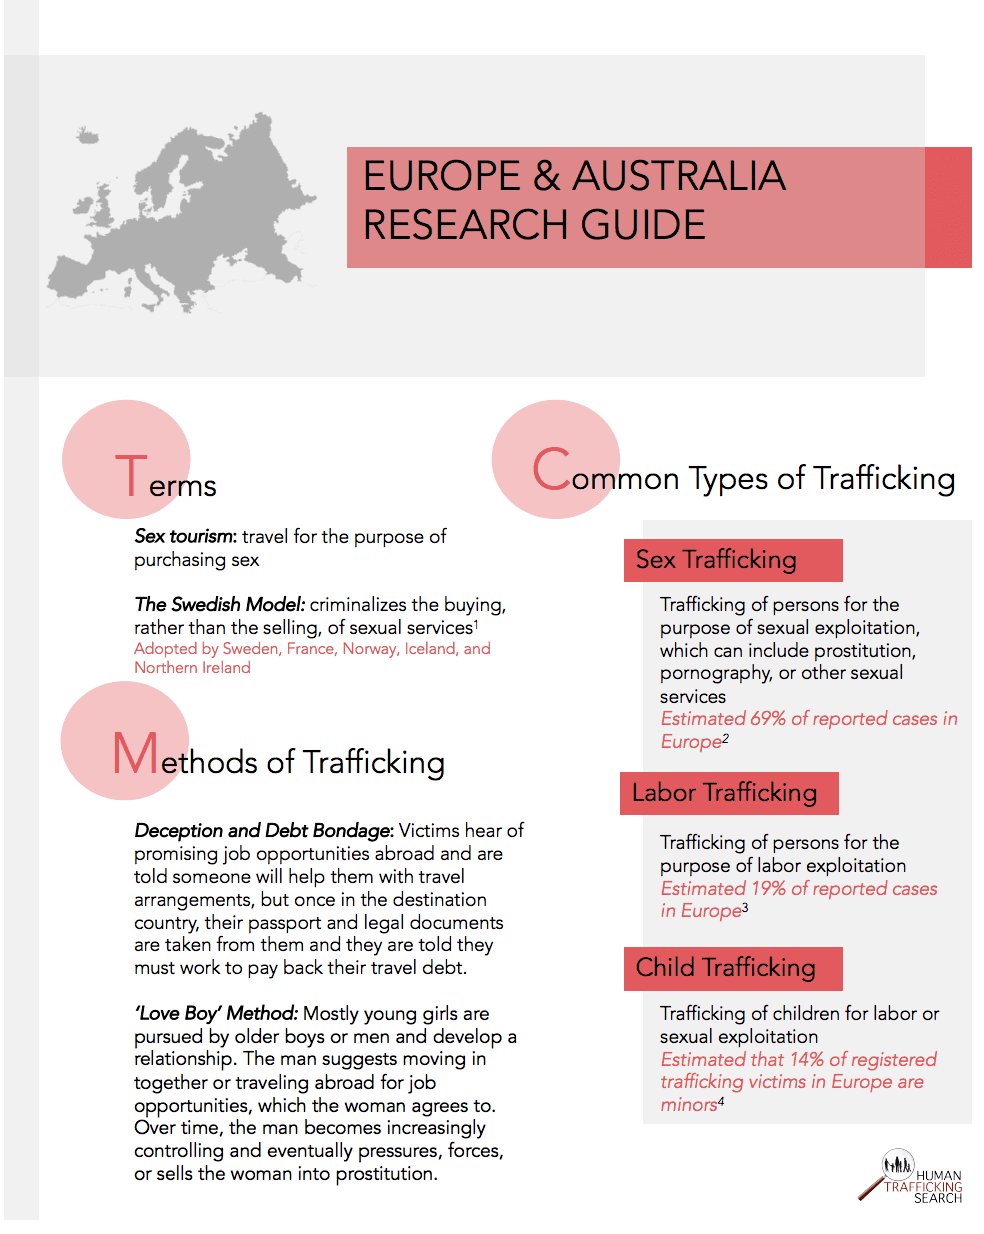 Europe and Australia Research Guide, 2017